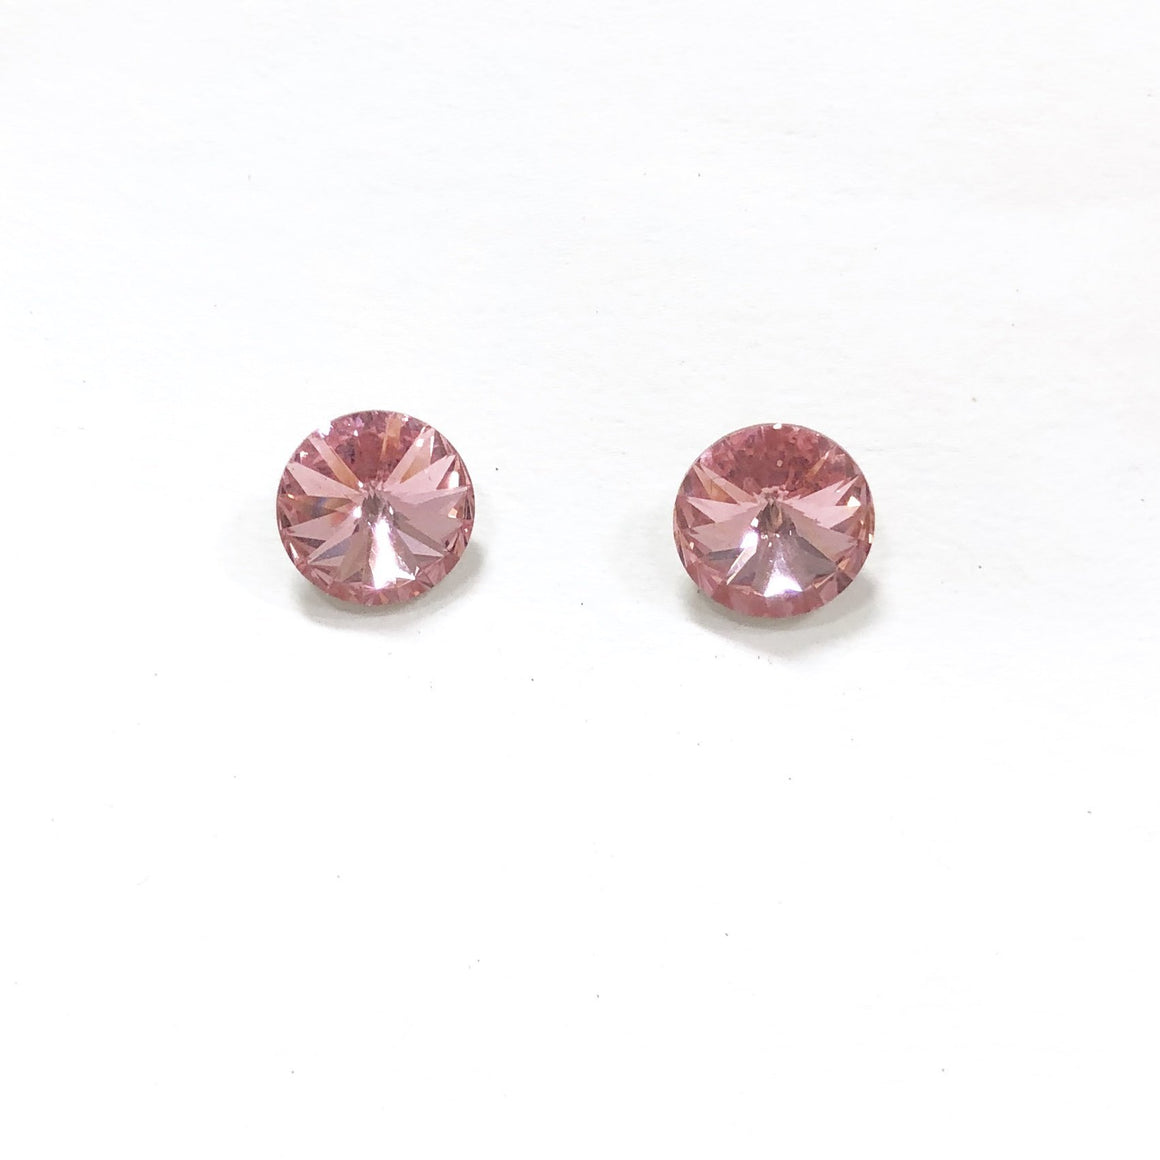 Irresistible Iridescent Stud Earring in Pink